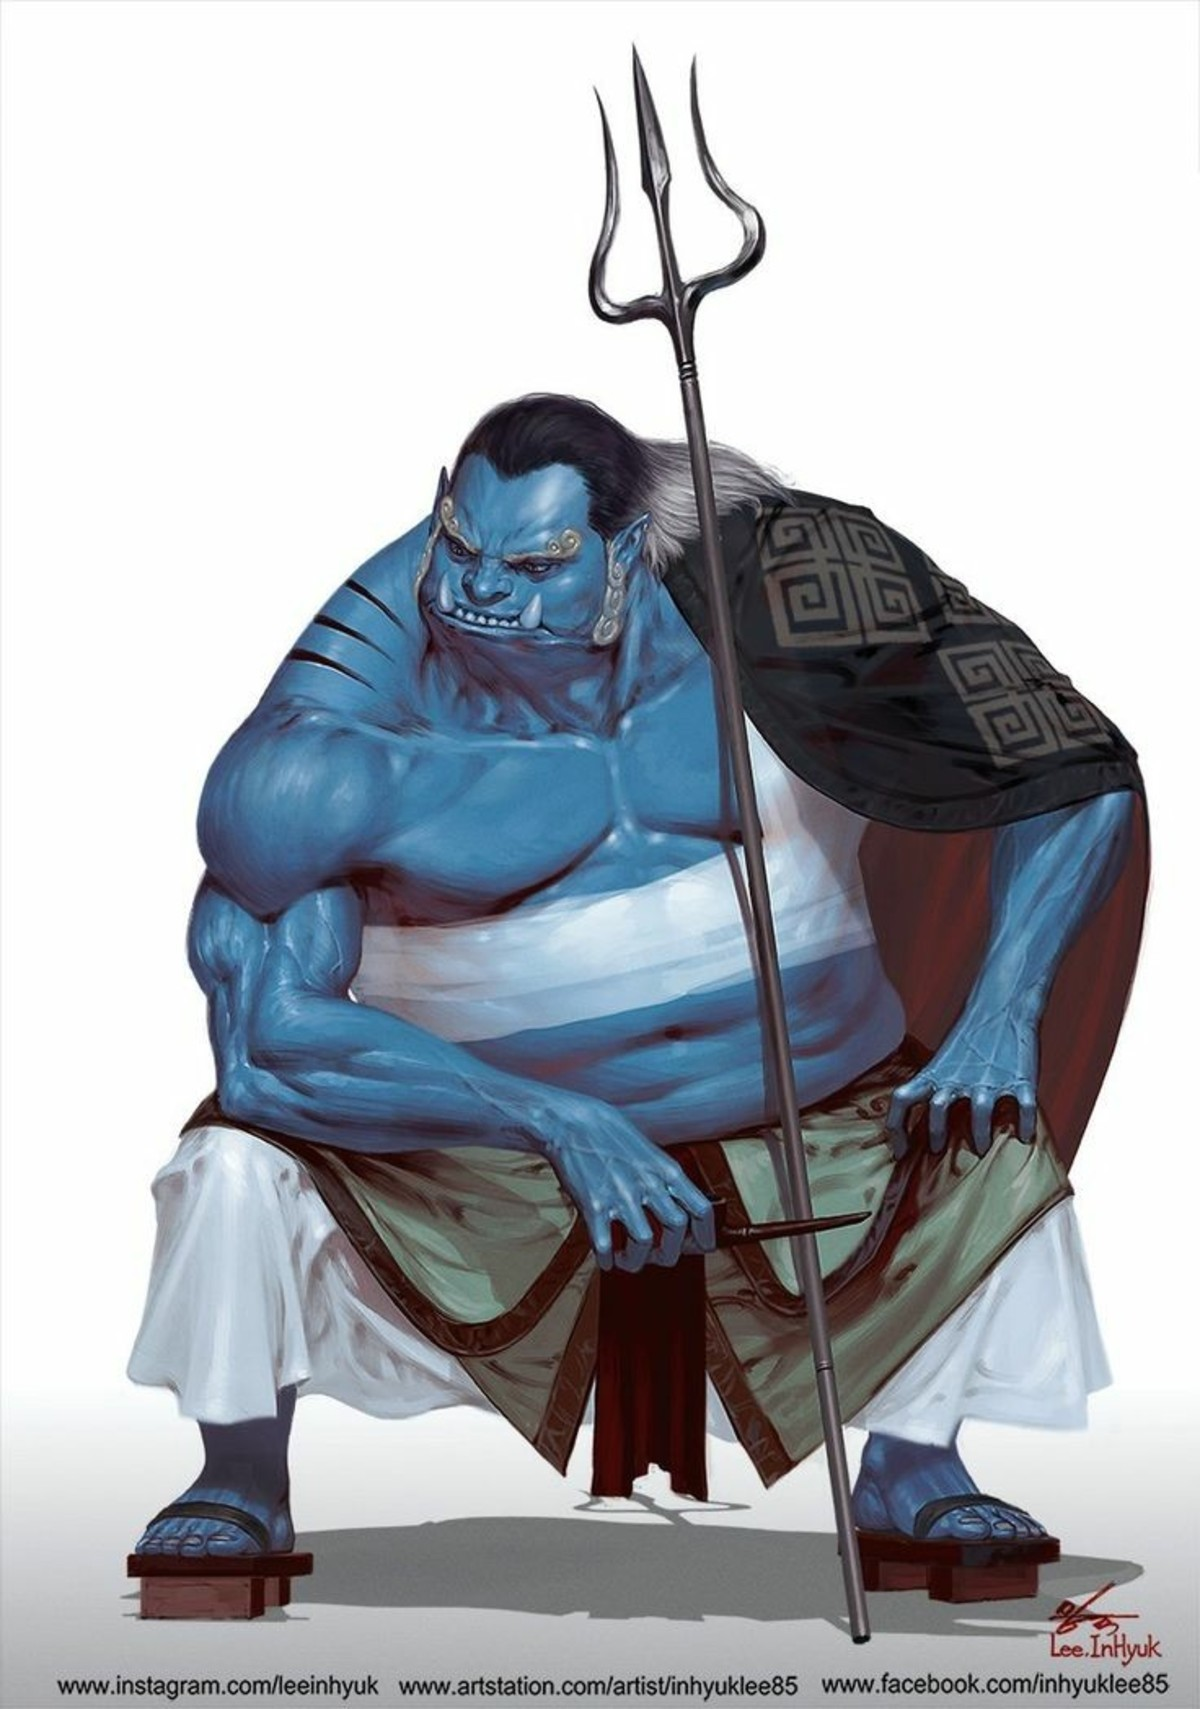 jinbei. join list: onepiece (236 subs)Mention History.. what do yall think is up with Jinbei? Is he gonna show up in Wano? Will he have a cool eyepatch?